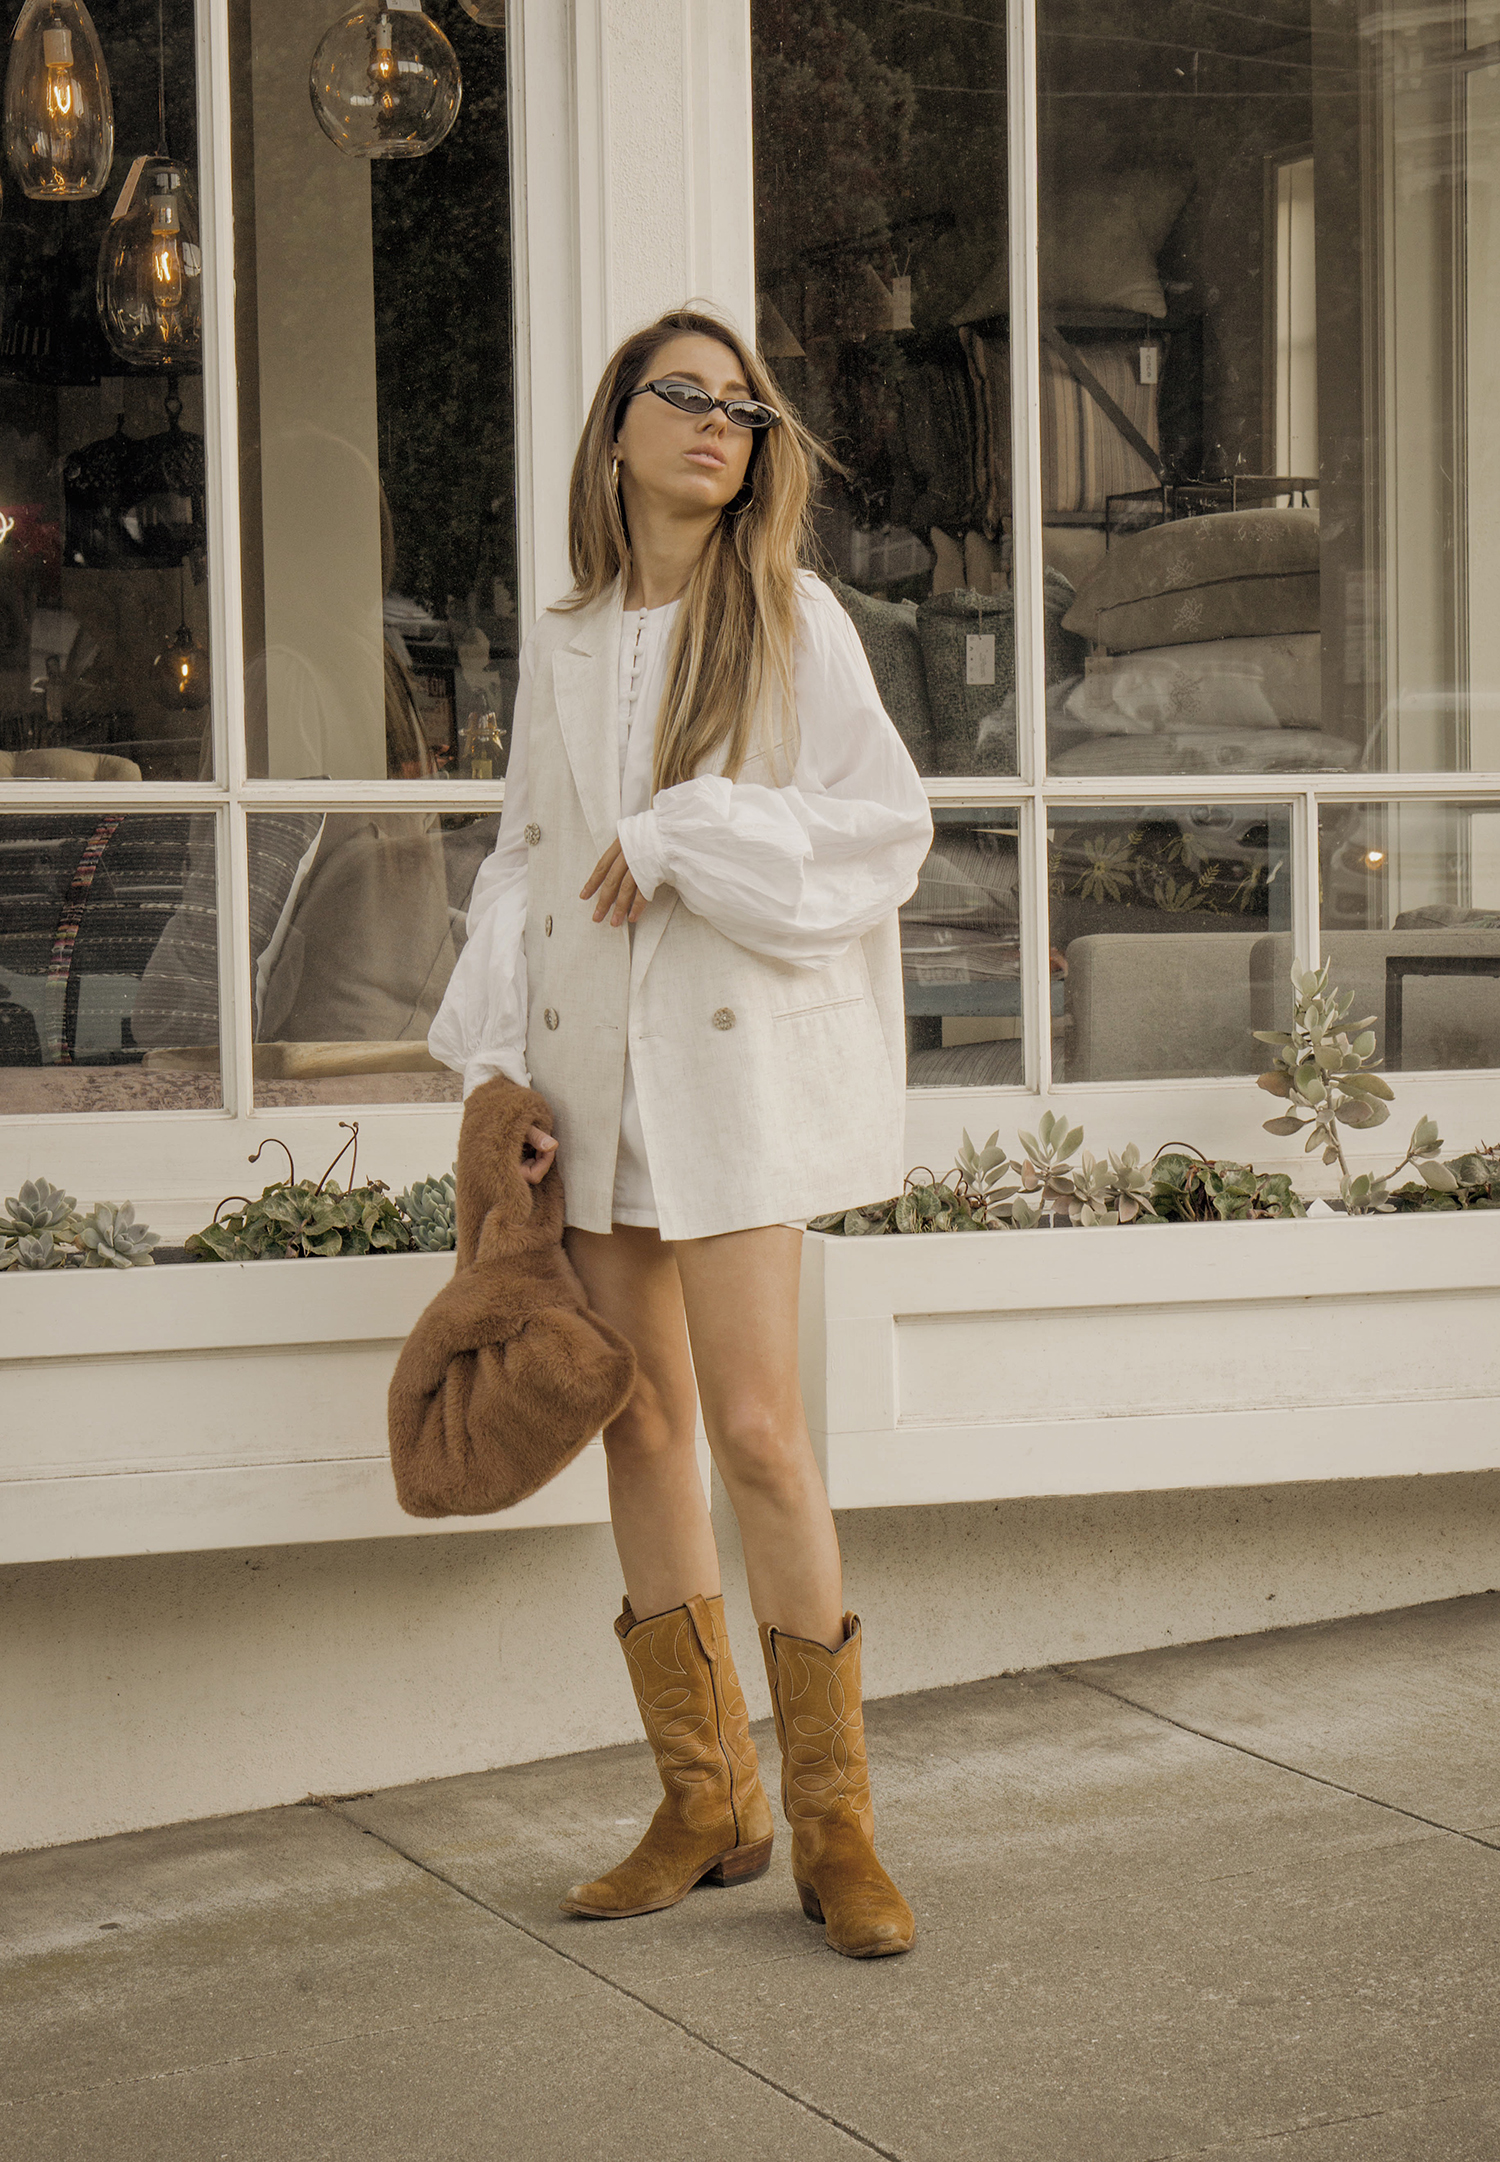 total_all_white_outfit_look_street_style_western_boots_isabel_marant_inspired_fur_bag_vest_denim_skirt_summer_2018_trend_lena_juice_the_white_ocean_03